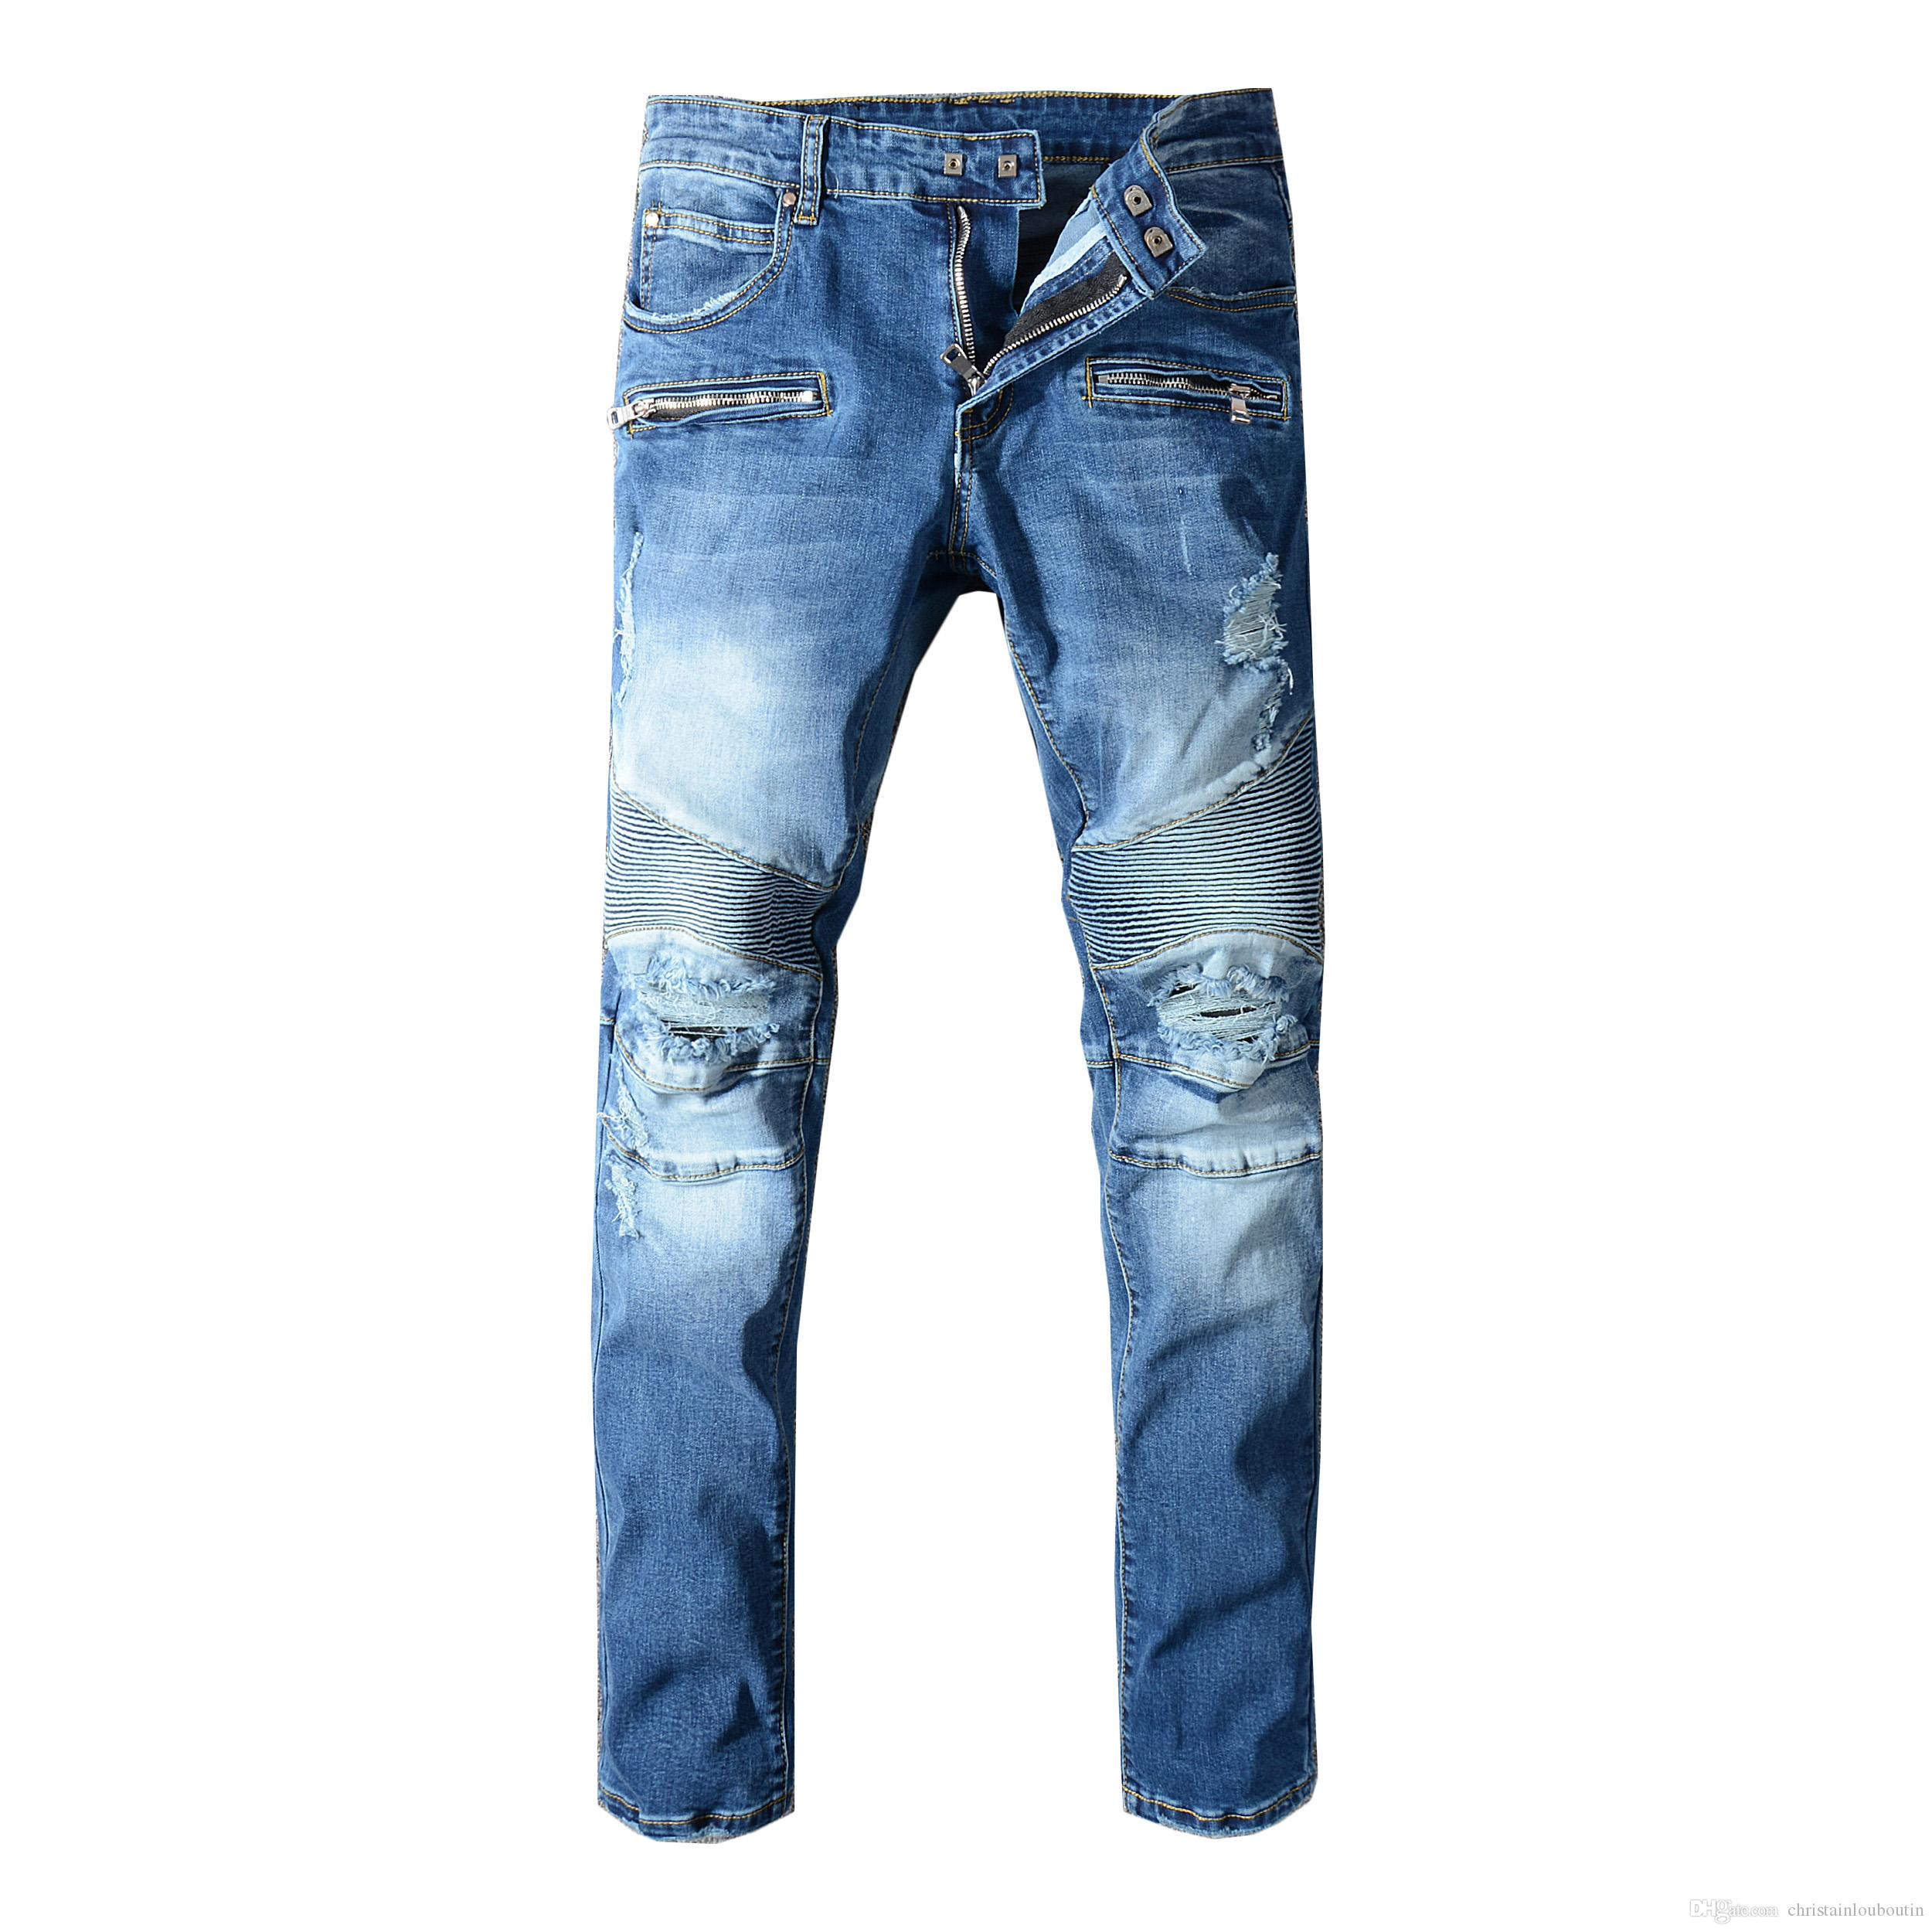 685deb0bf60 2019 2019 Balmain Men Distressed Ripped Jeans Fashion Designer Straight  Jeans Causal Denim Pants Streetwear Style Mens Jeans Cool From  Christainlouboutin, ...